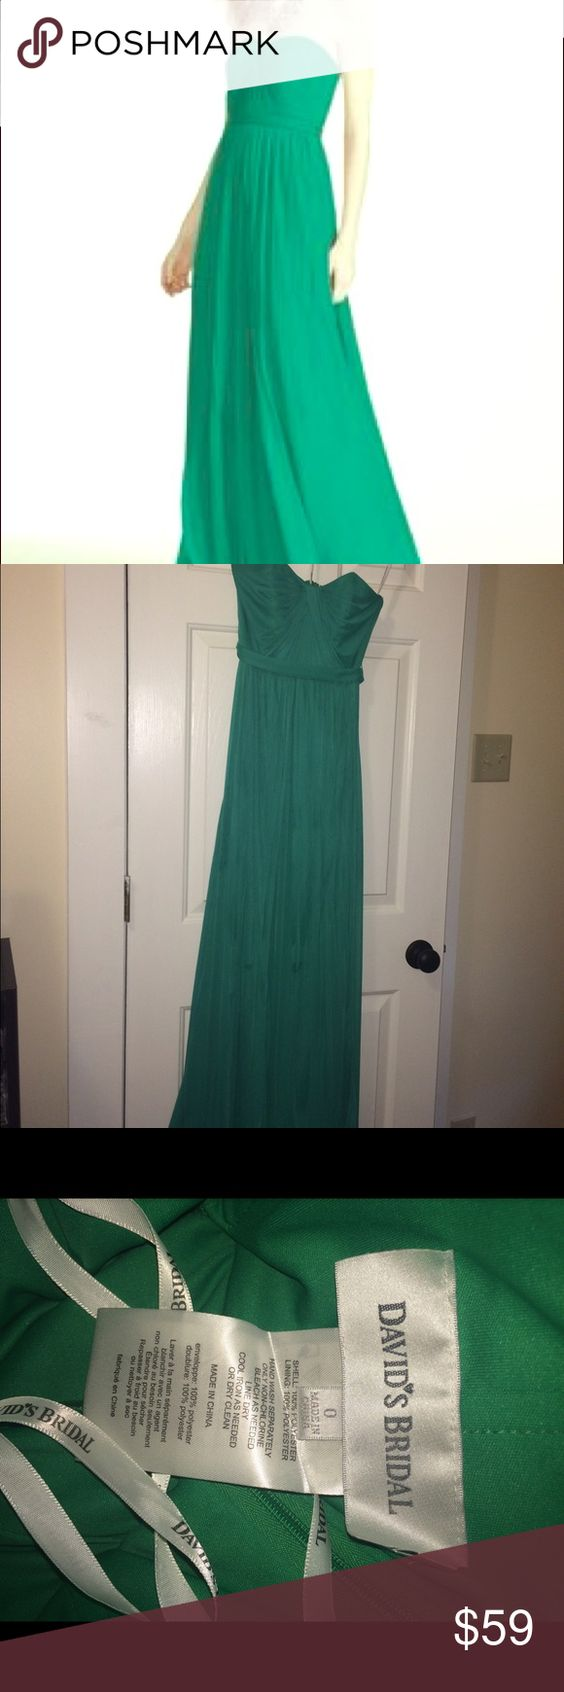 Emerald Versa David's Bridal dress Green floor length dress, hangs beautifully and doesn't cling to curves. Size 0. The top can be worn dozens of ways - strapless, halter, one shoulder, etc. David's Bridal Dresses Wedding